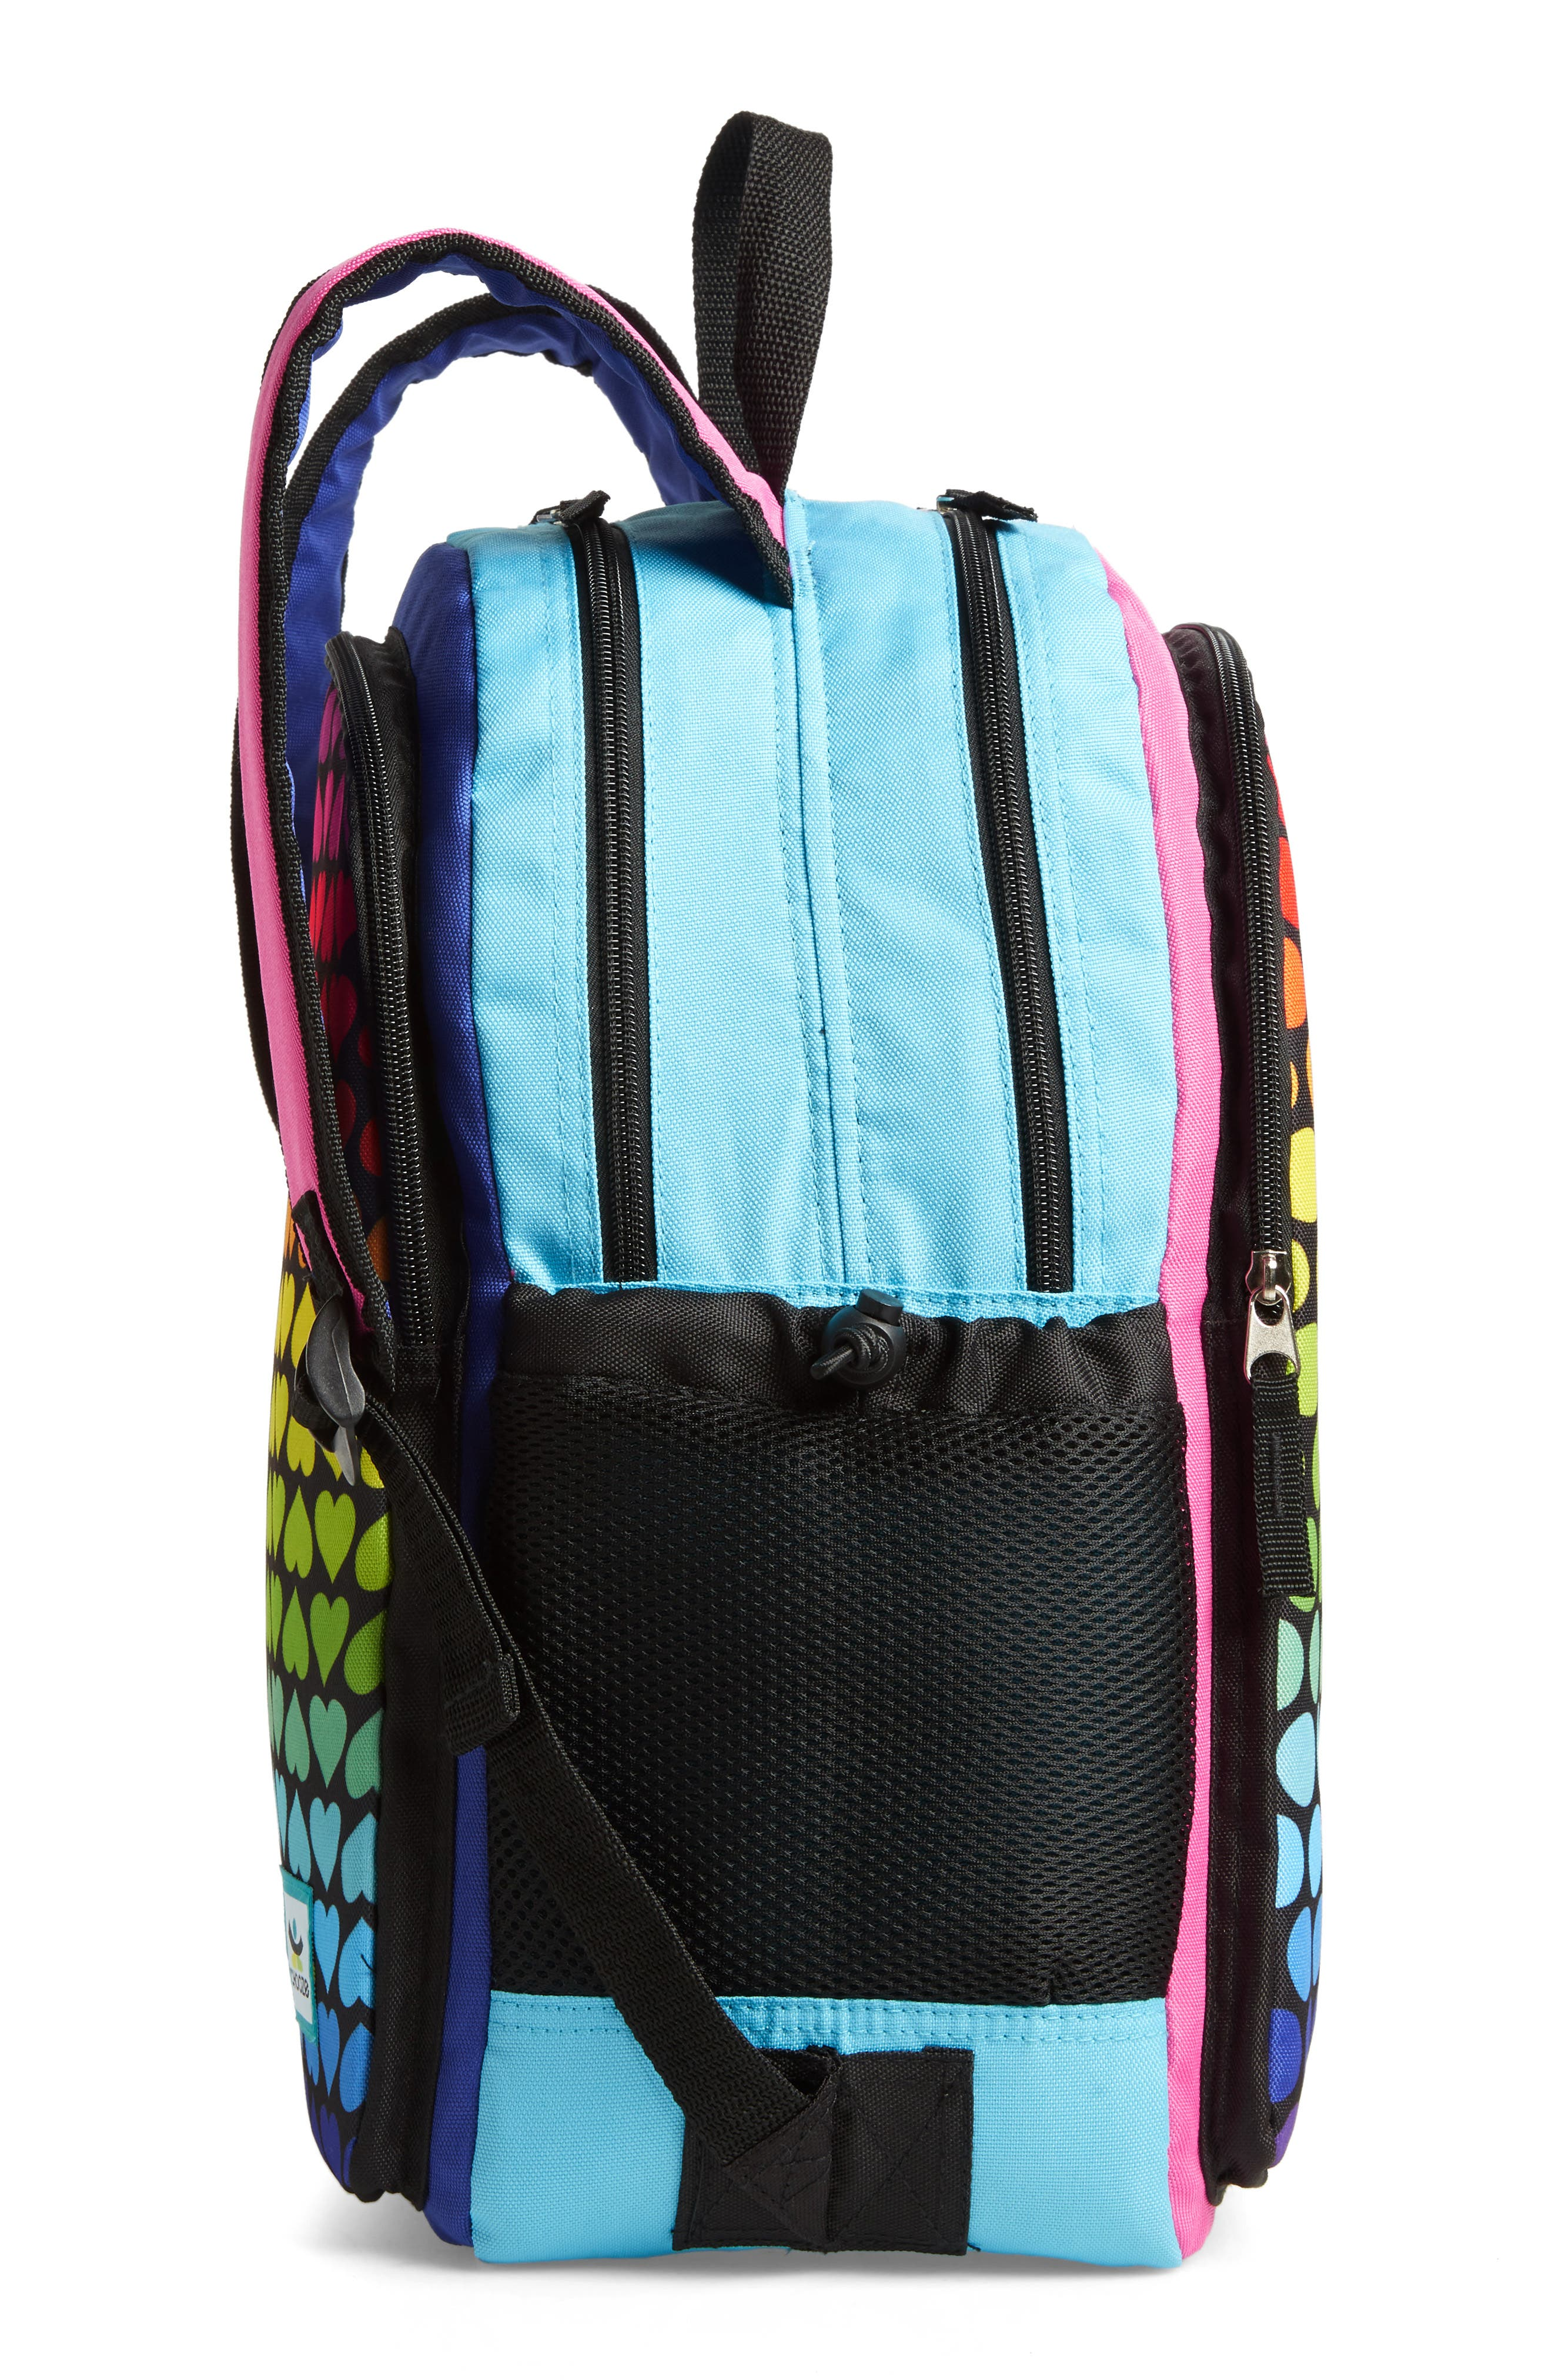 Hue Rainbow Reversible Backpack,                             Alternate thumbnail 5, color,                             001